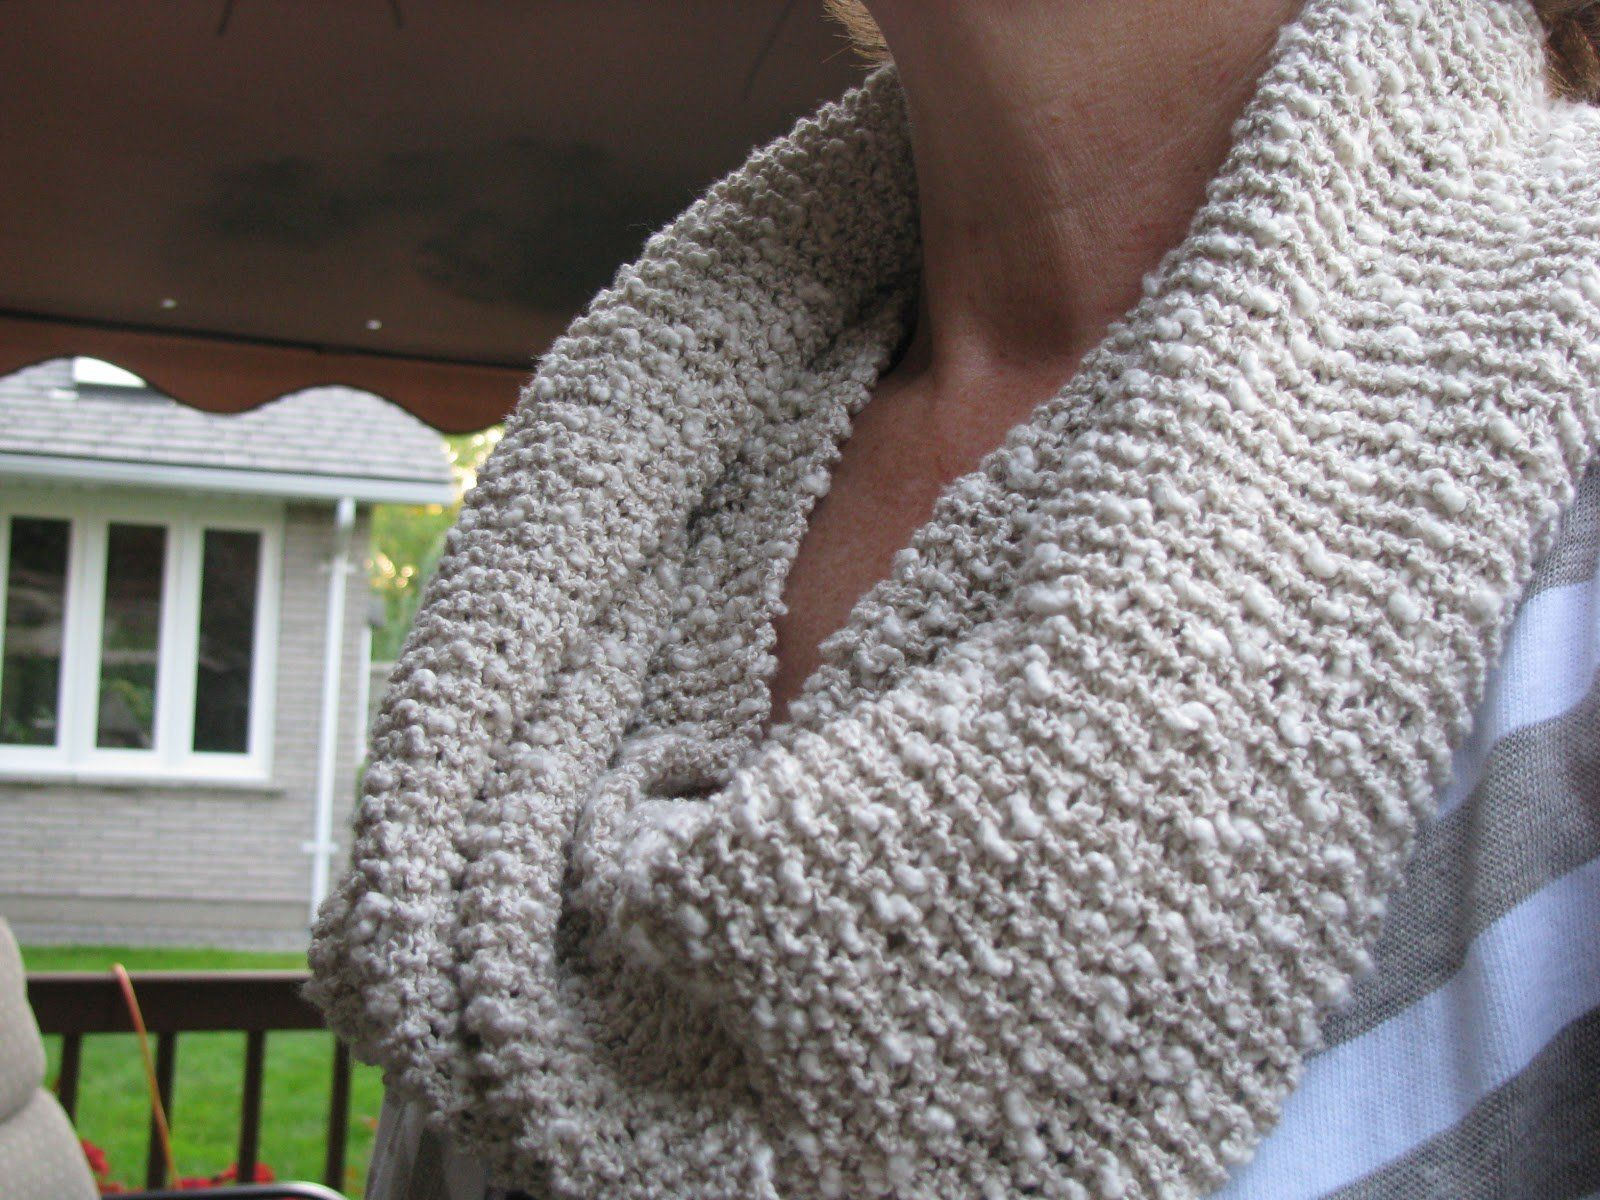 Free Knitting Pattern - Cowls and Neck Warmers: Oatmeal Mobius Cowl ...